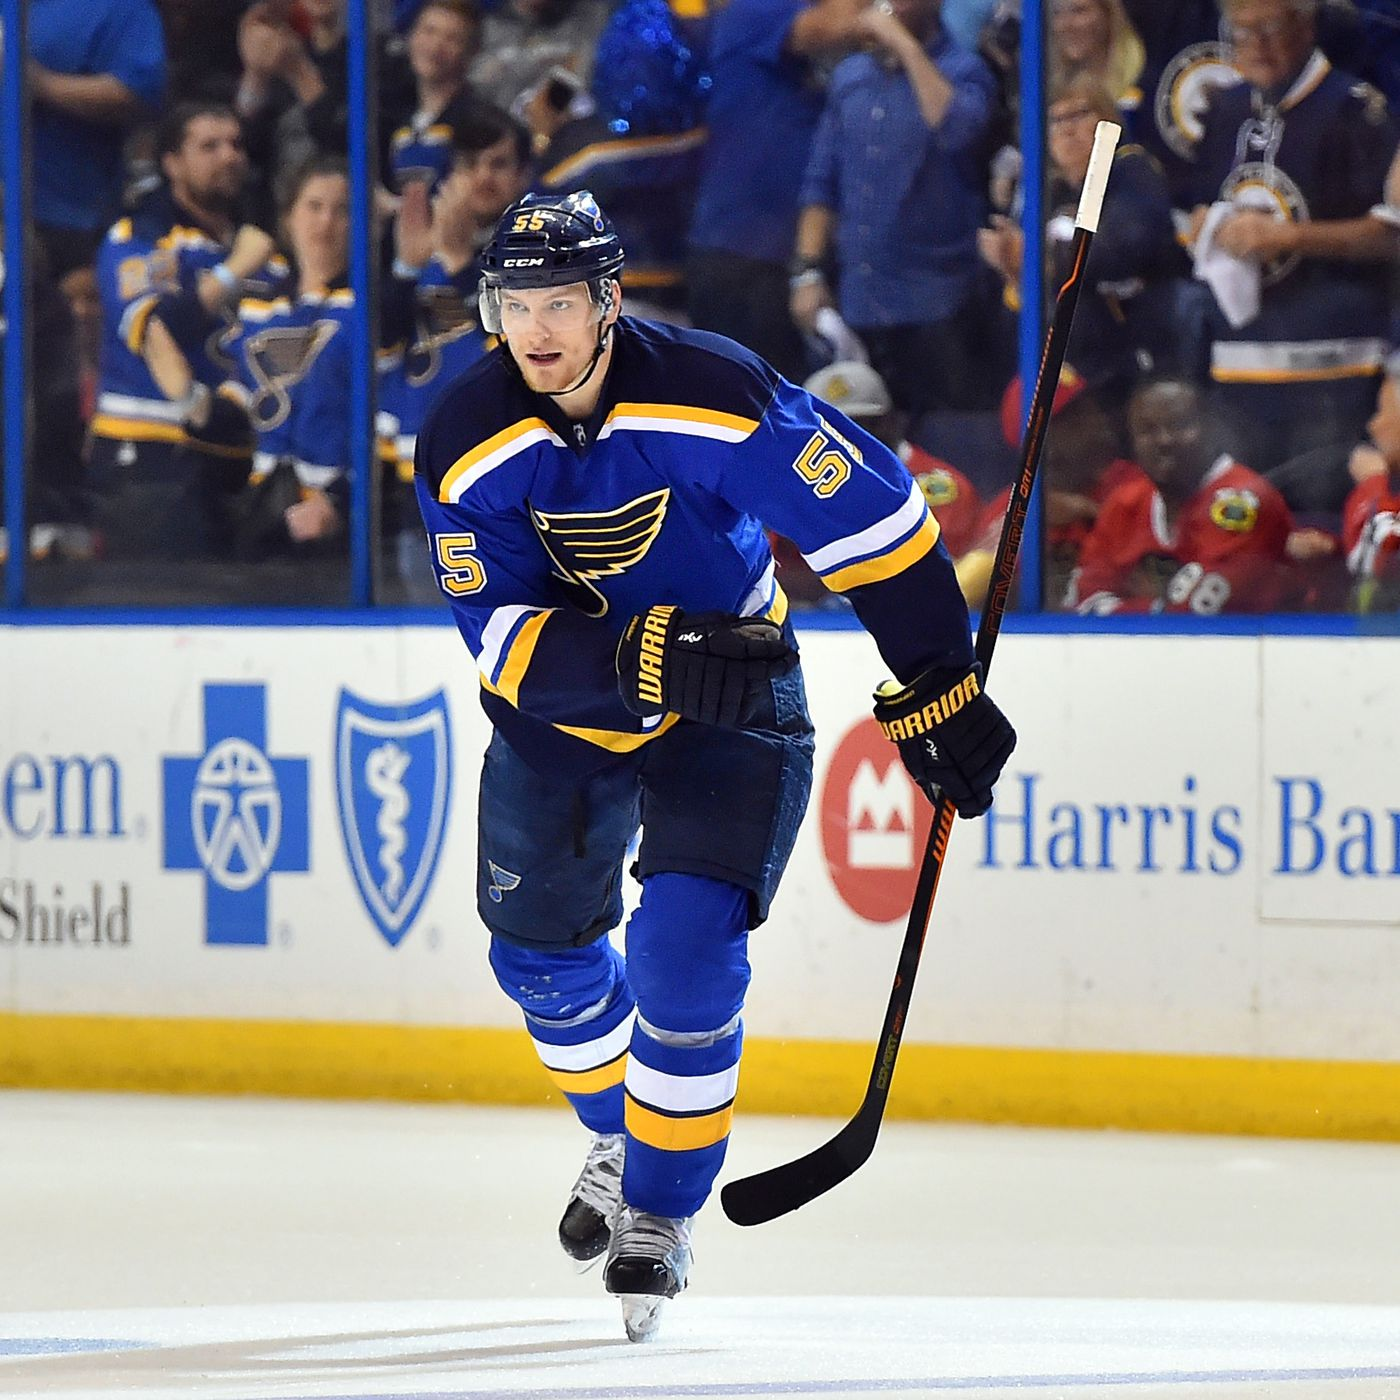 cb9d440b913 NHL s best players under age 25 for 2017  Colton Parayko ranks No. 20 on  the verge of greater responsibility